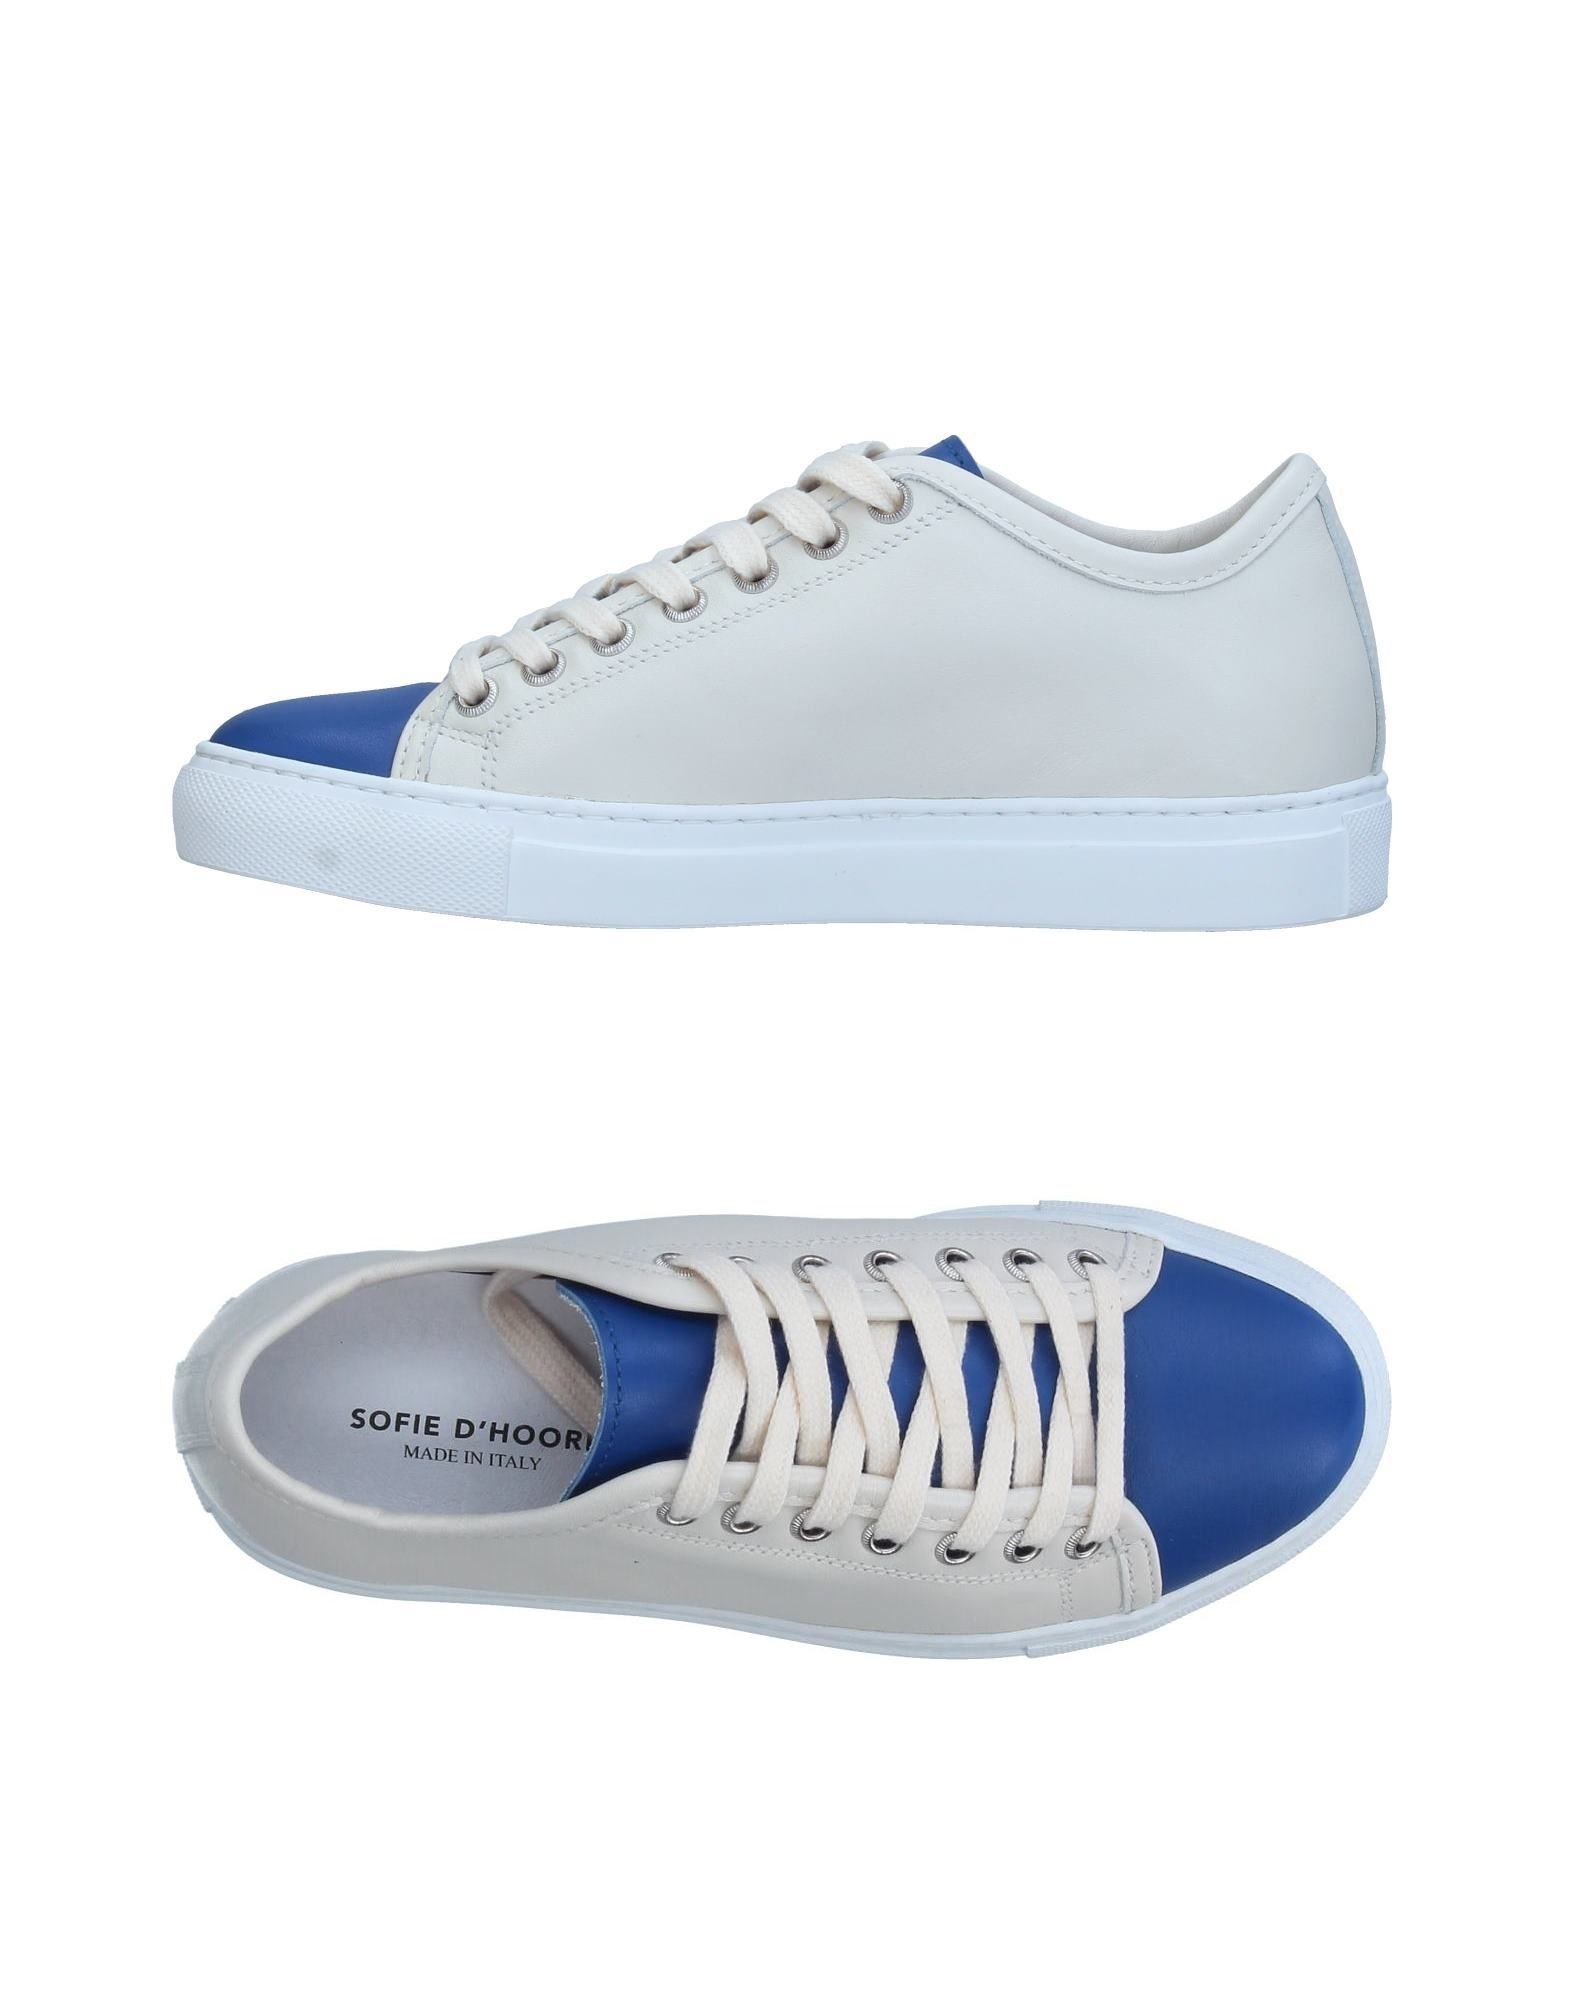 Sneakers Ivory Sofie D Hoore Pinterest Trainers Shoes And Women